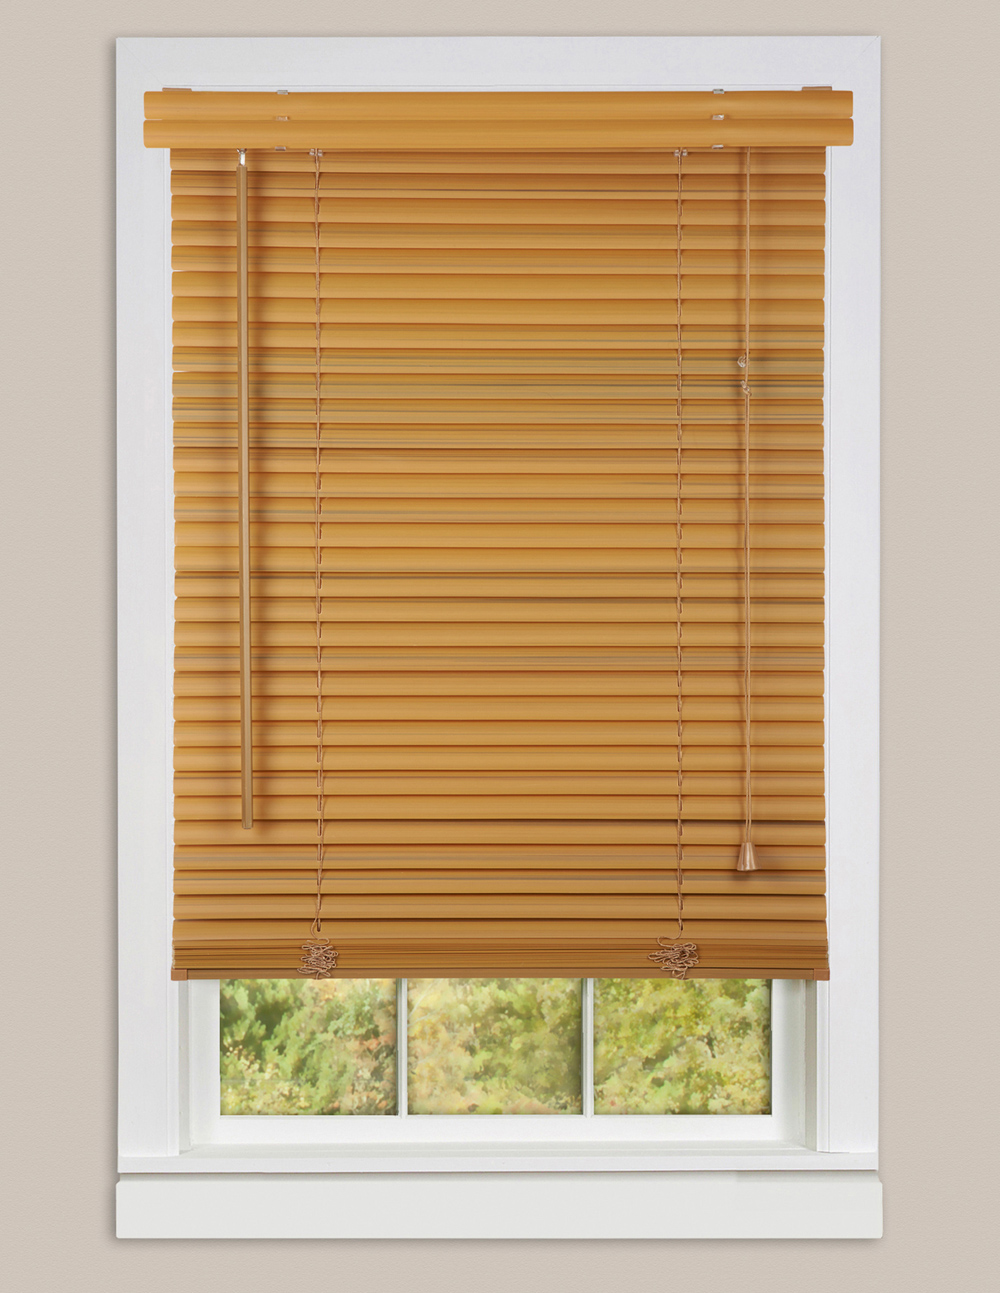 Window Blinds Mini Blind 1 Quot Slat Vinyl Venetian Blinds